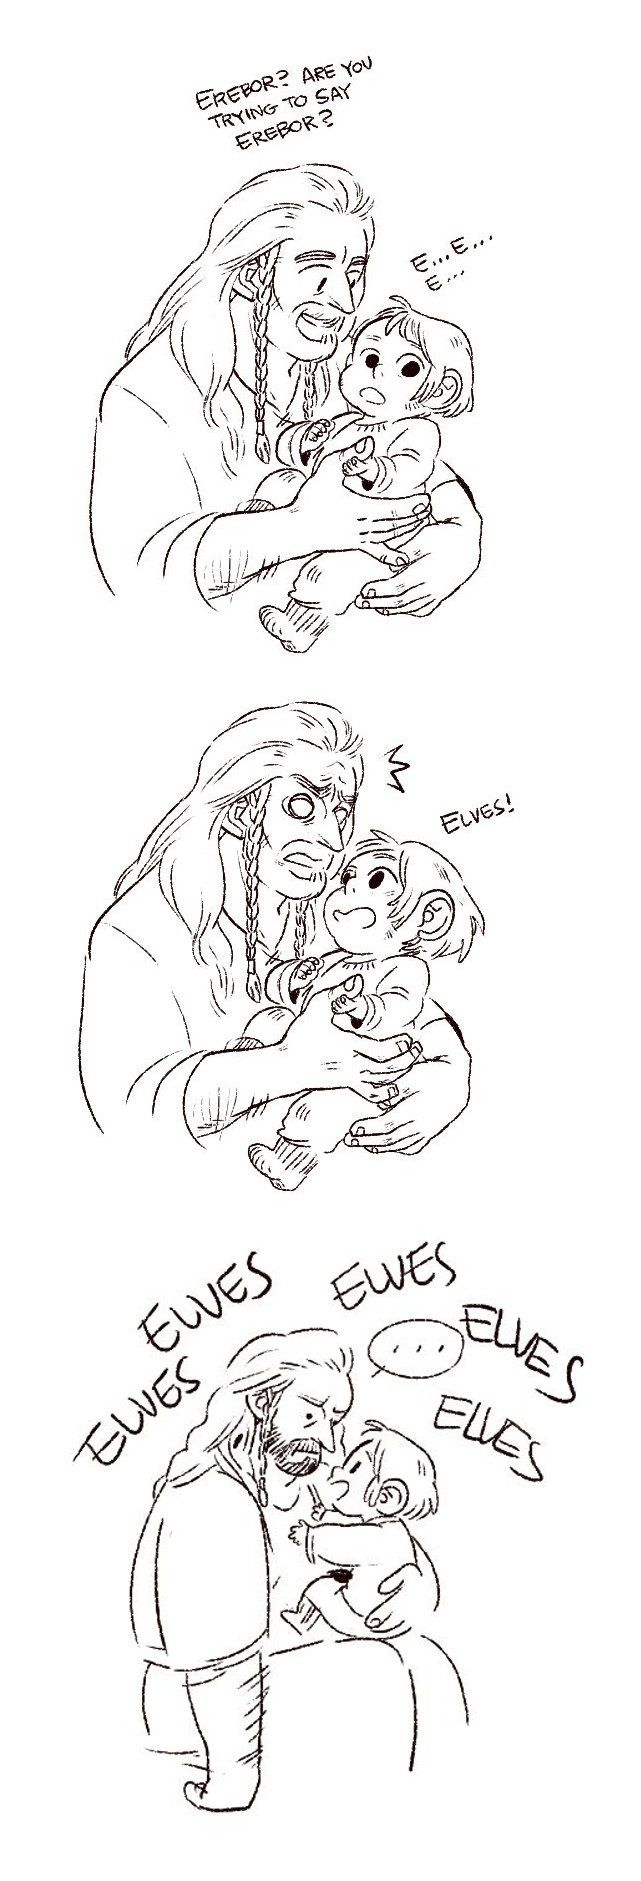 Kili's first word by papermachette on tumblr